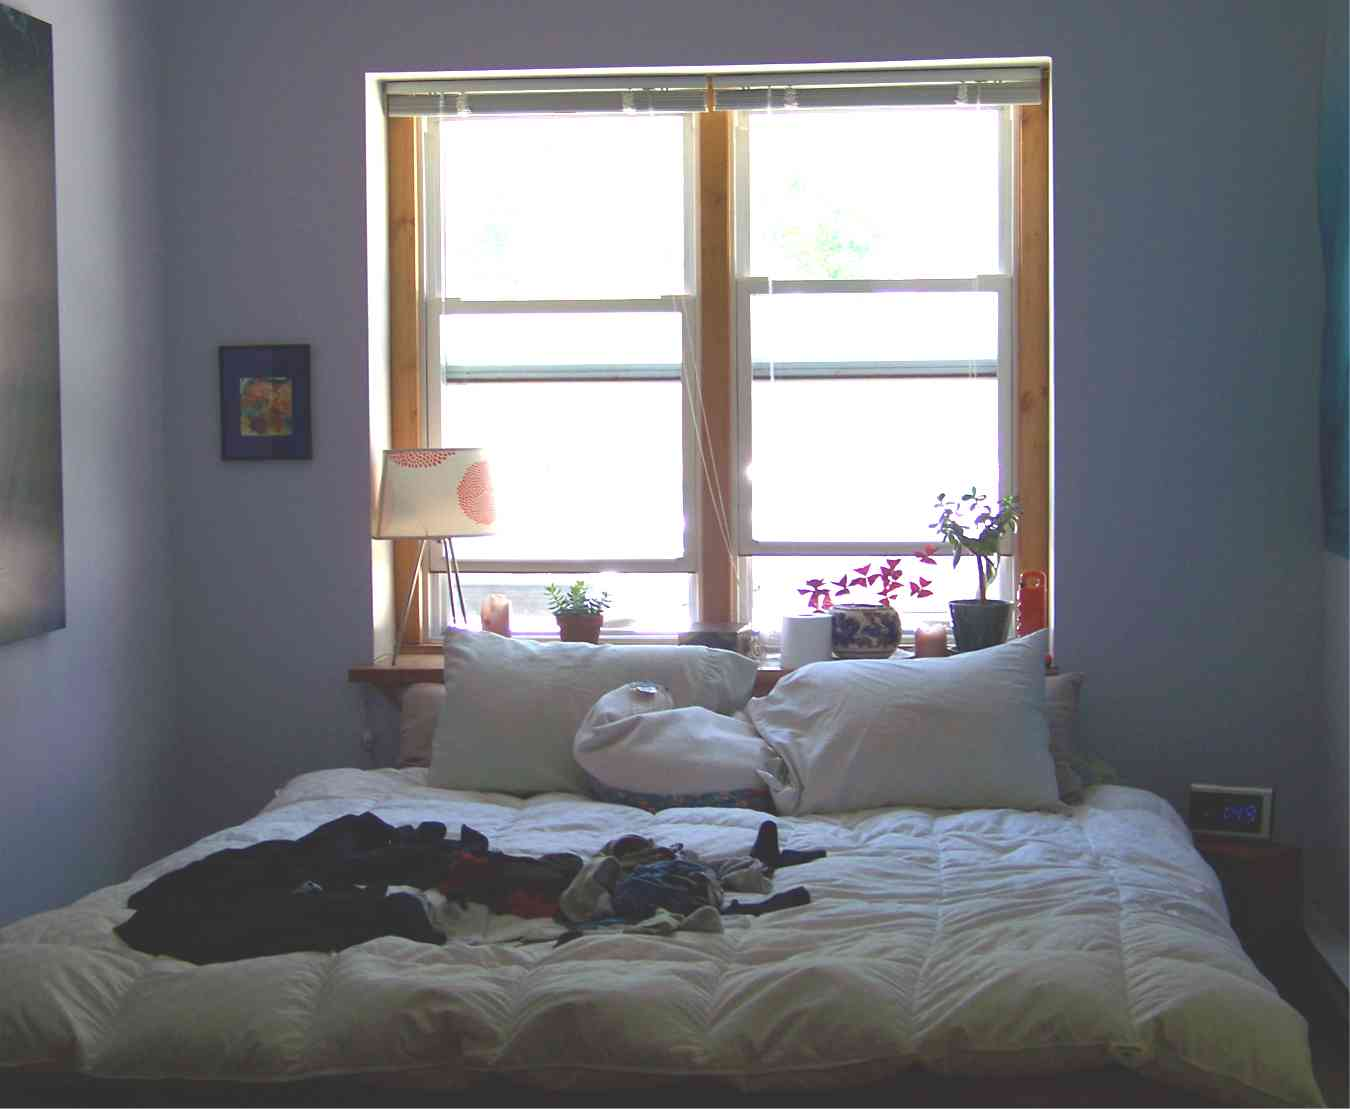 Allen's Landing Winooski VT Sunny Bedroom With Large Windows